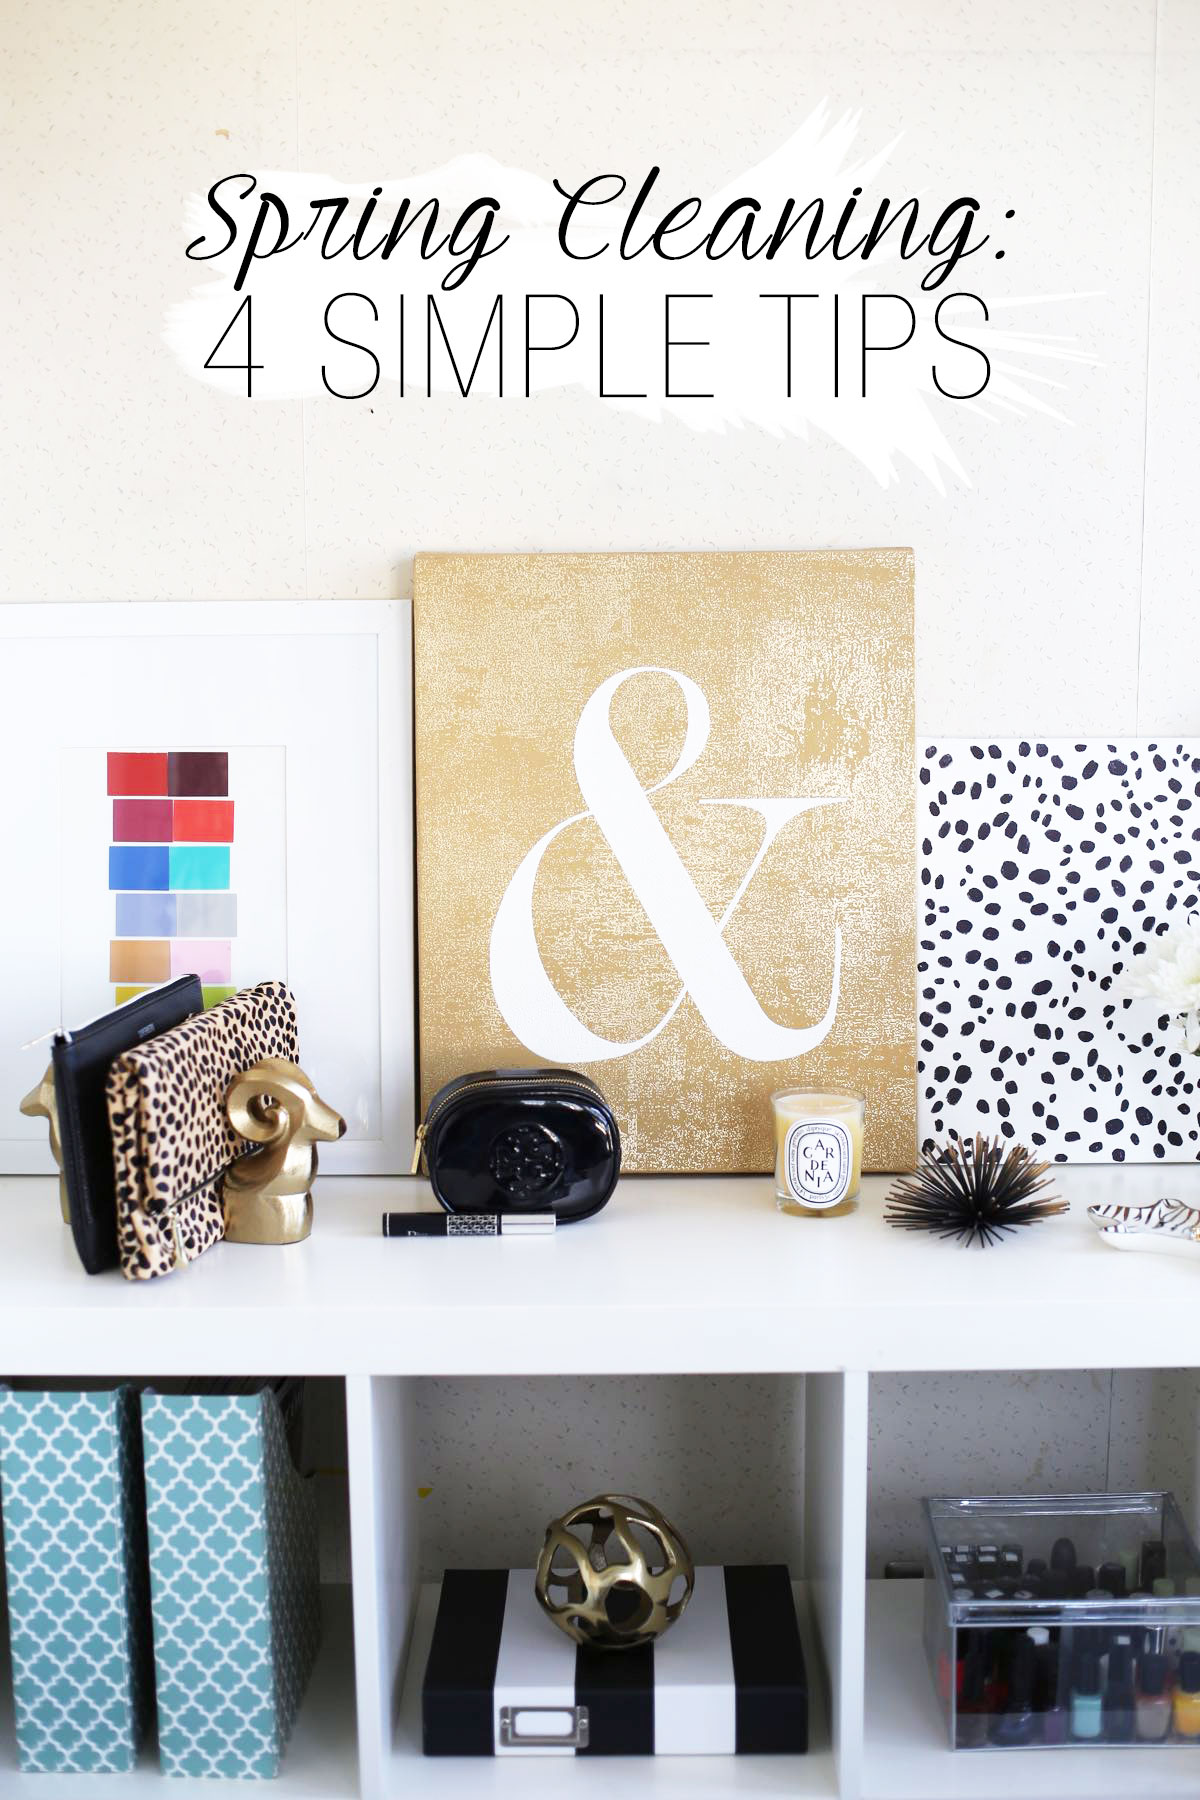 Spring cleaning made simple with these four tips